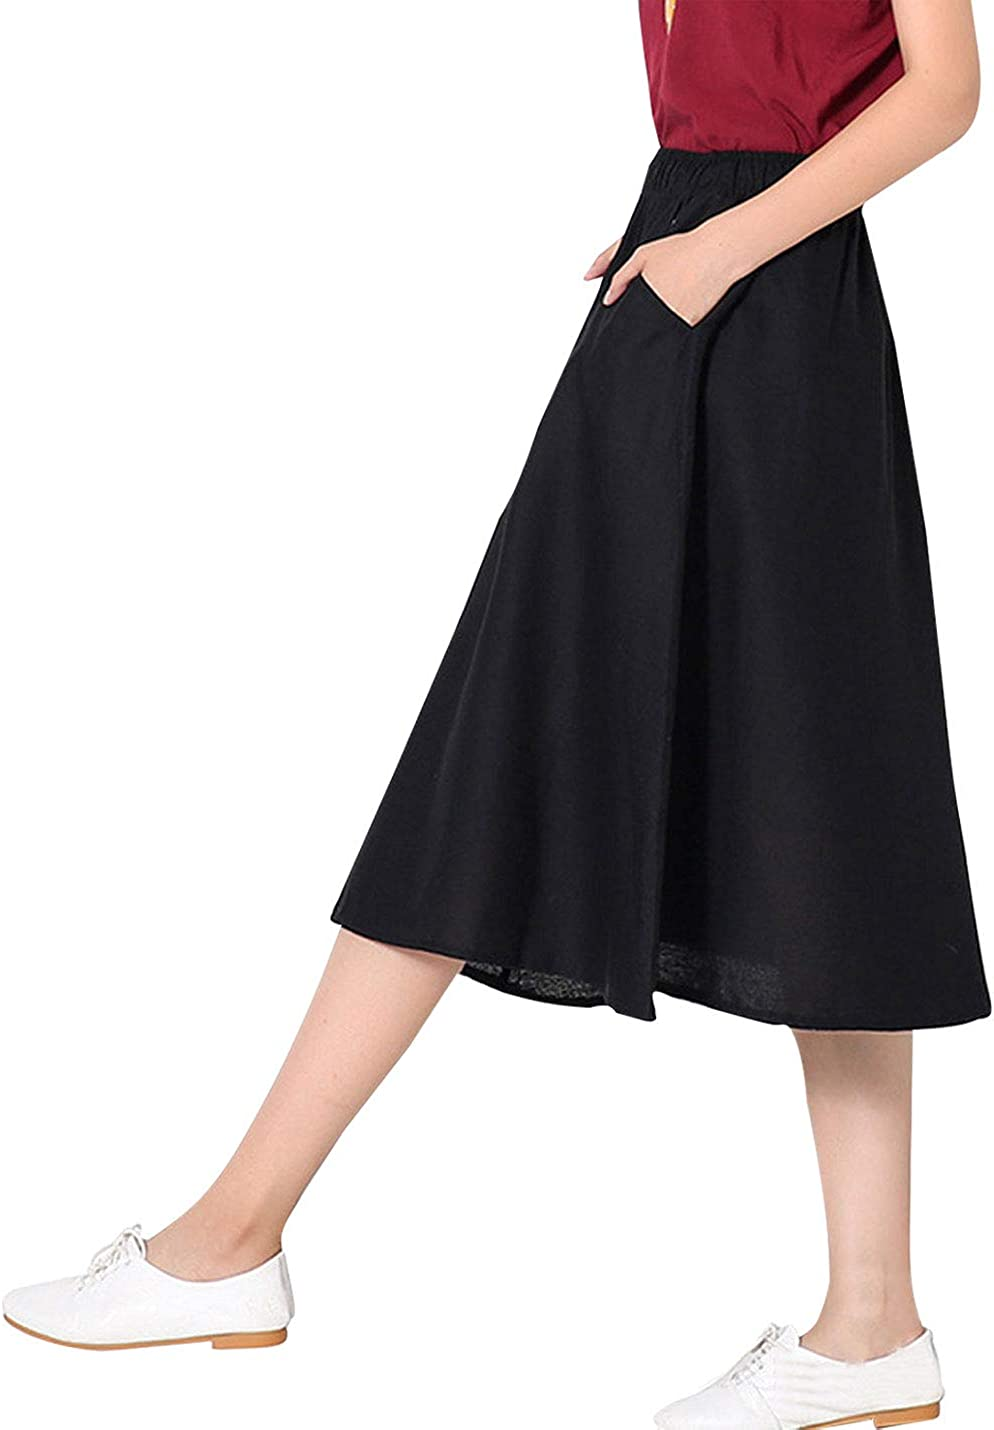 Omoone Women's Elastic Waist Casual Loose Cotton Swing A Line Pleated Skirts